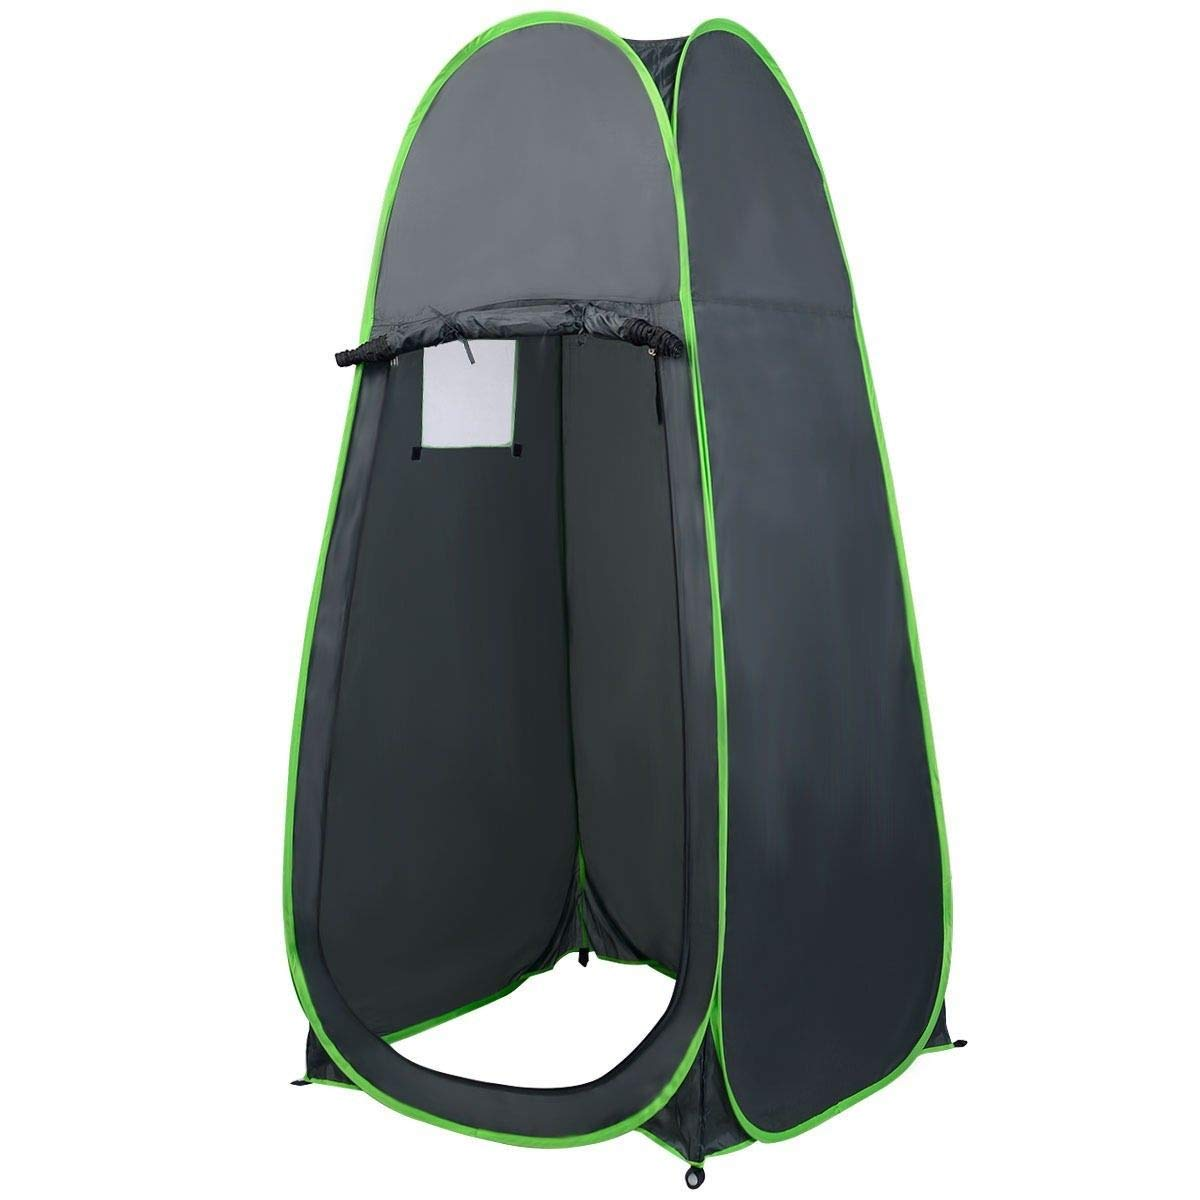 Lucidz Portable Pop UP Tent Toilet Camping Bathing Shower Fishing Changing Room Tent Green